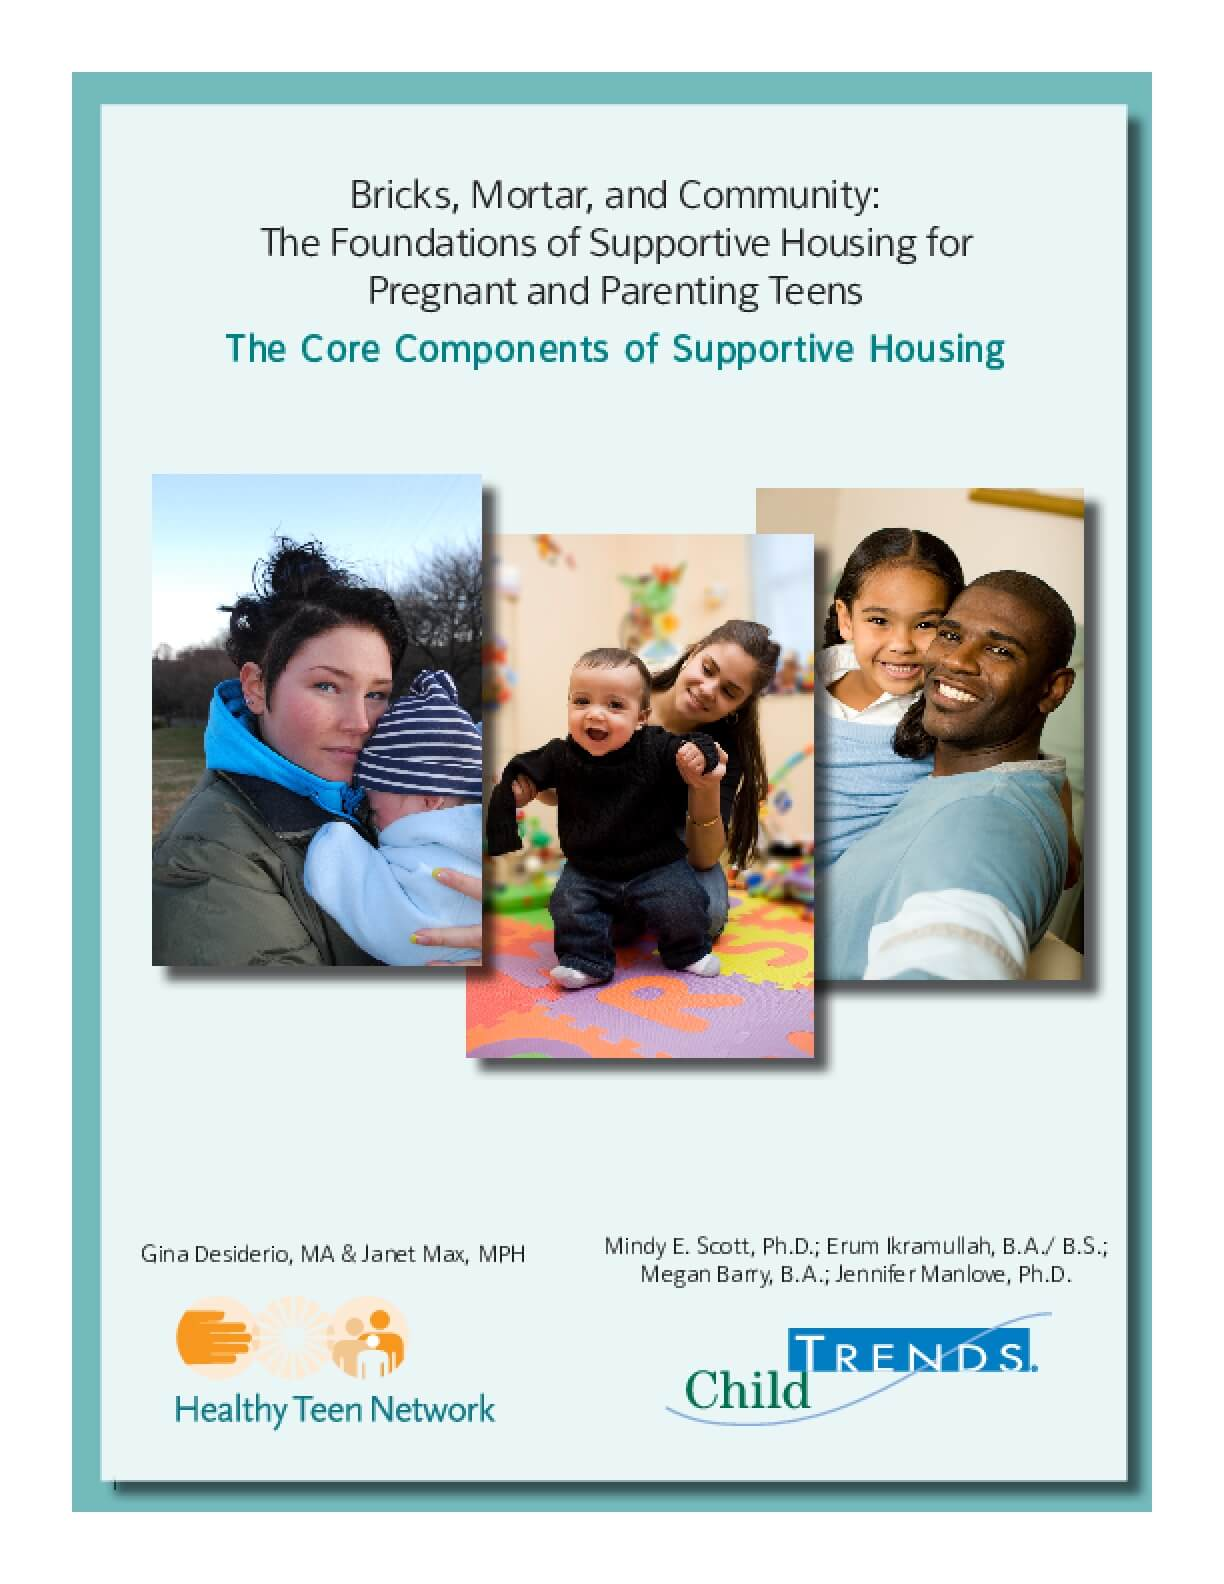 Bricks, Mortar, and Community: The Foundations of Supportive Housing for Pregnant and Parenting Teens